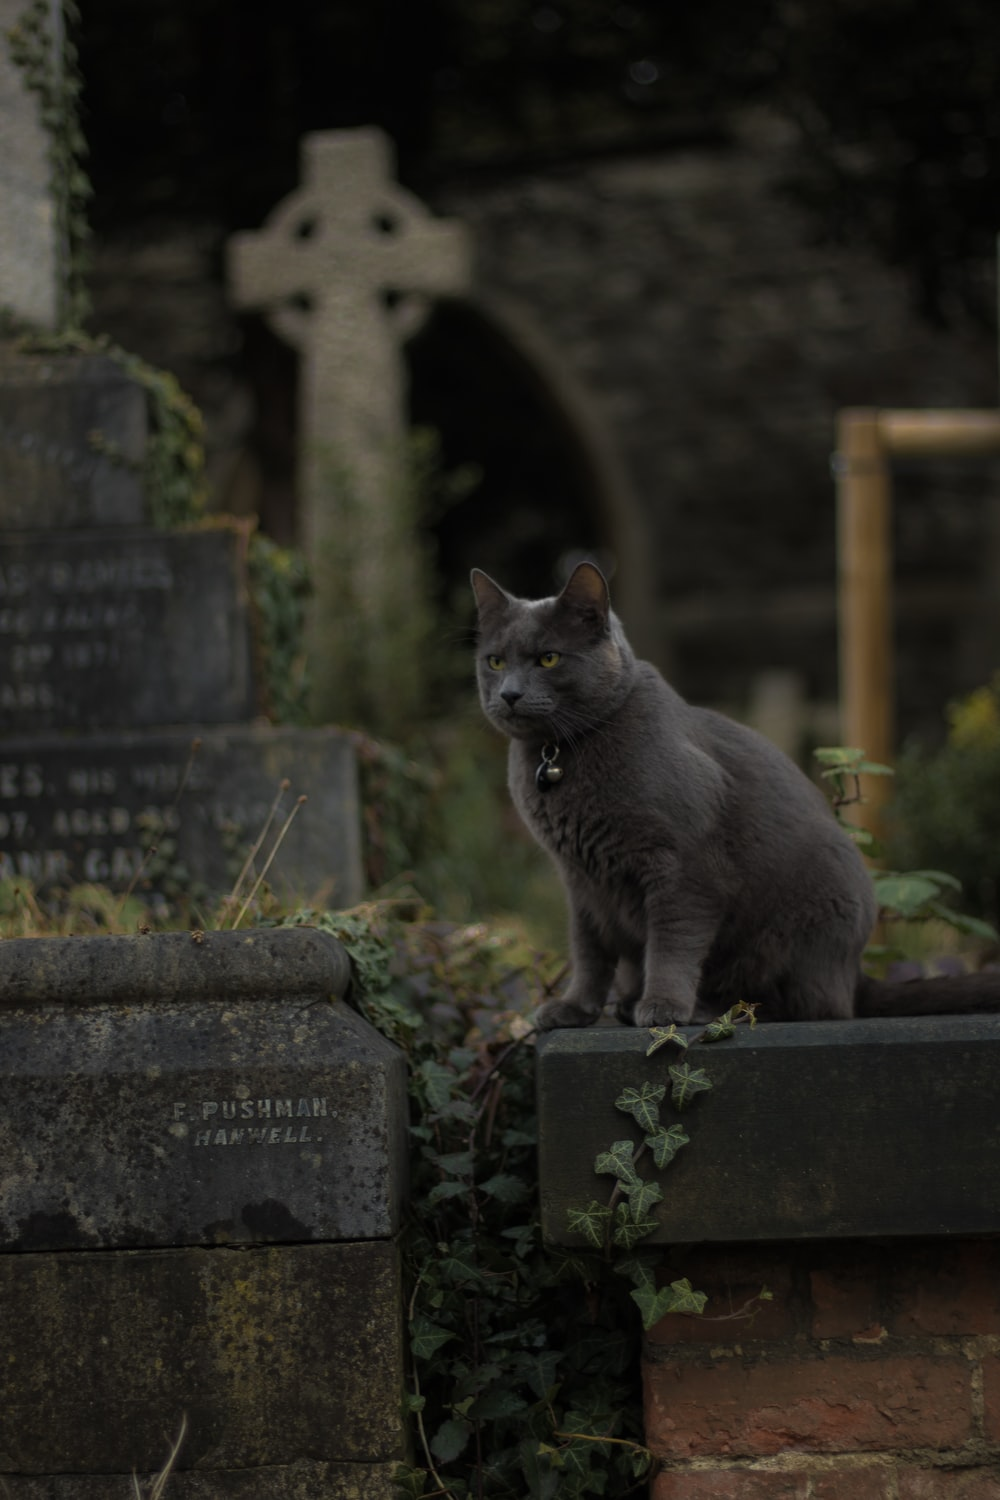 siamese cat on gray stone during daytime